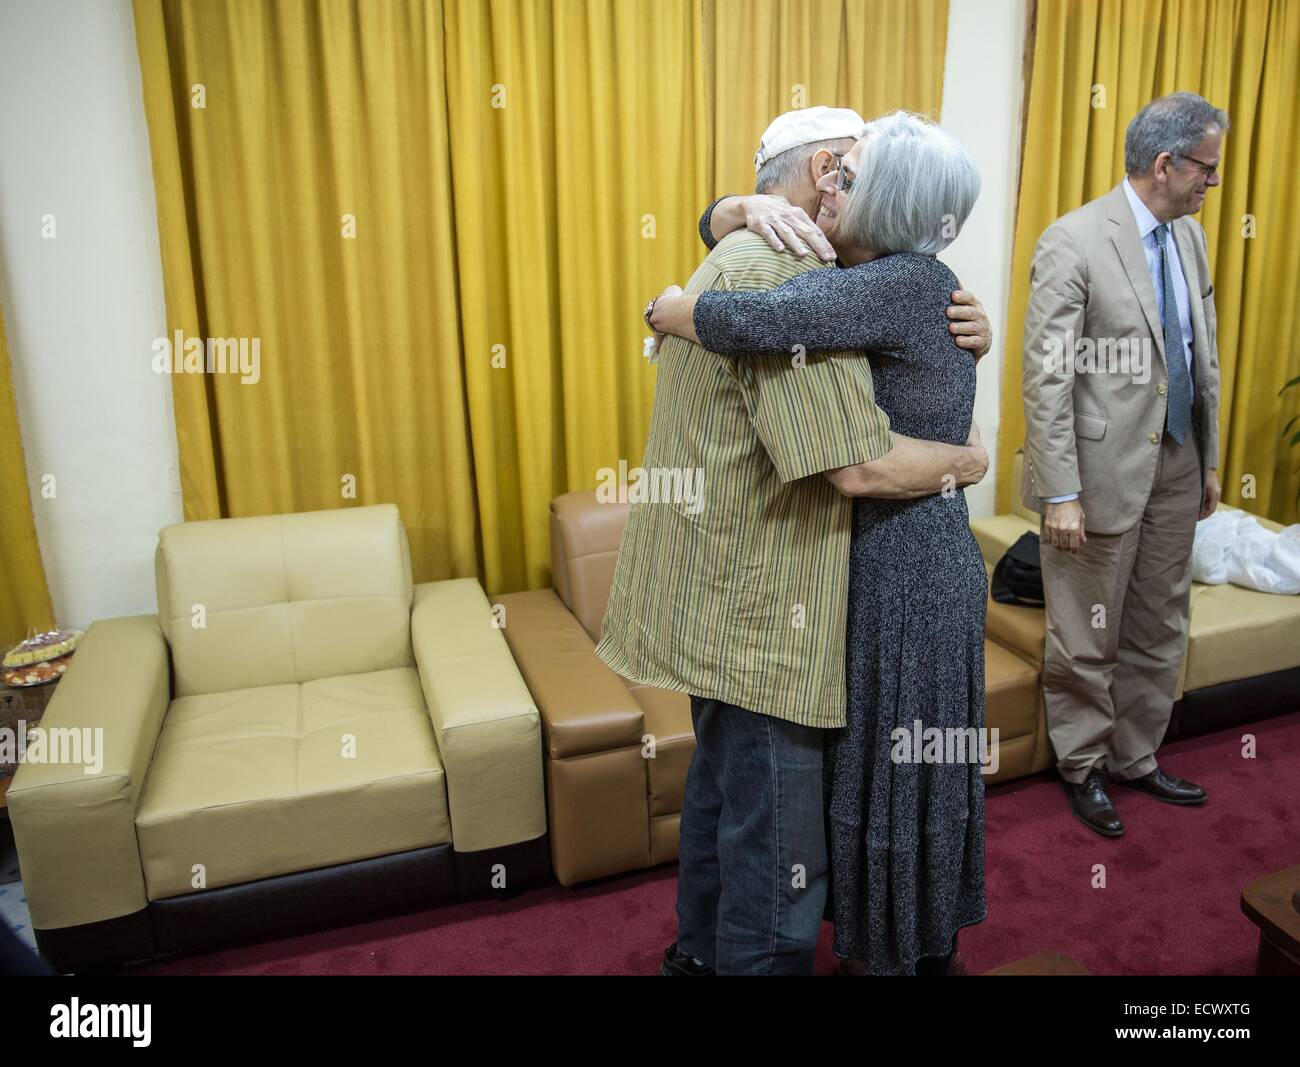 USAID contractor Alan Gross, imprisoned in Cuba for five years, is reunited with his wife Judy Gross after his release - Stock Image